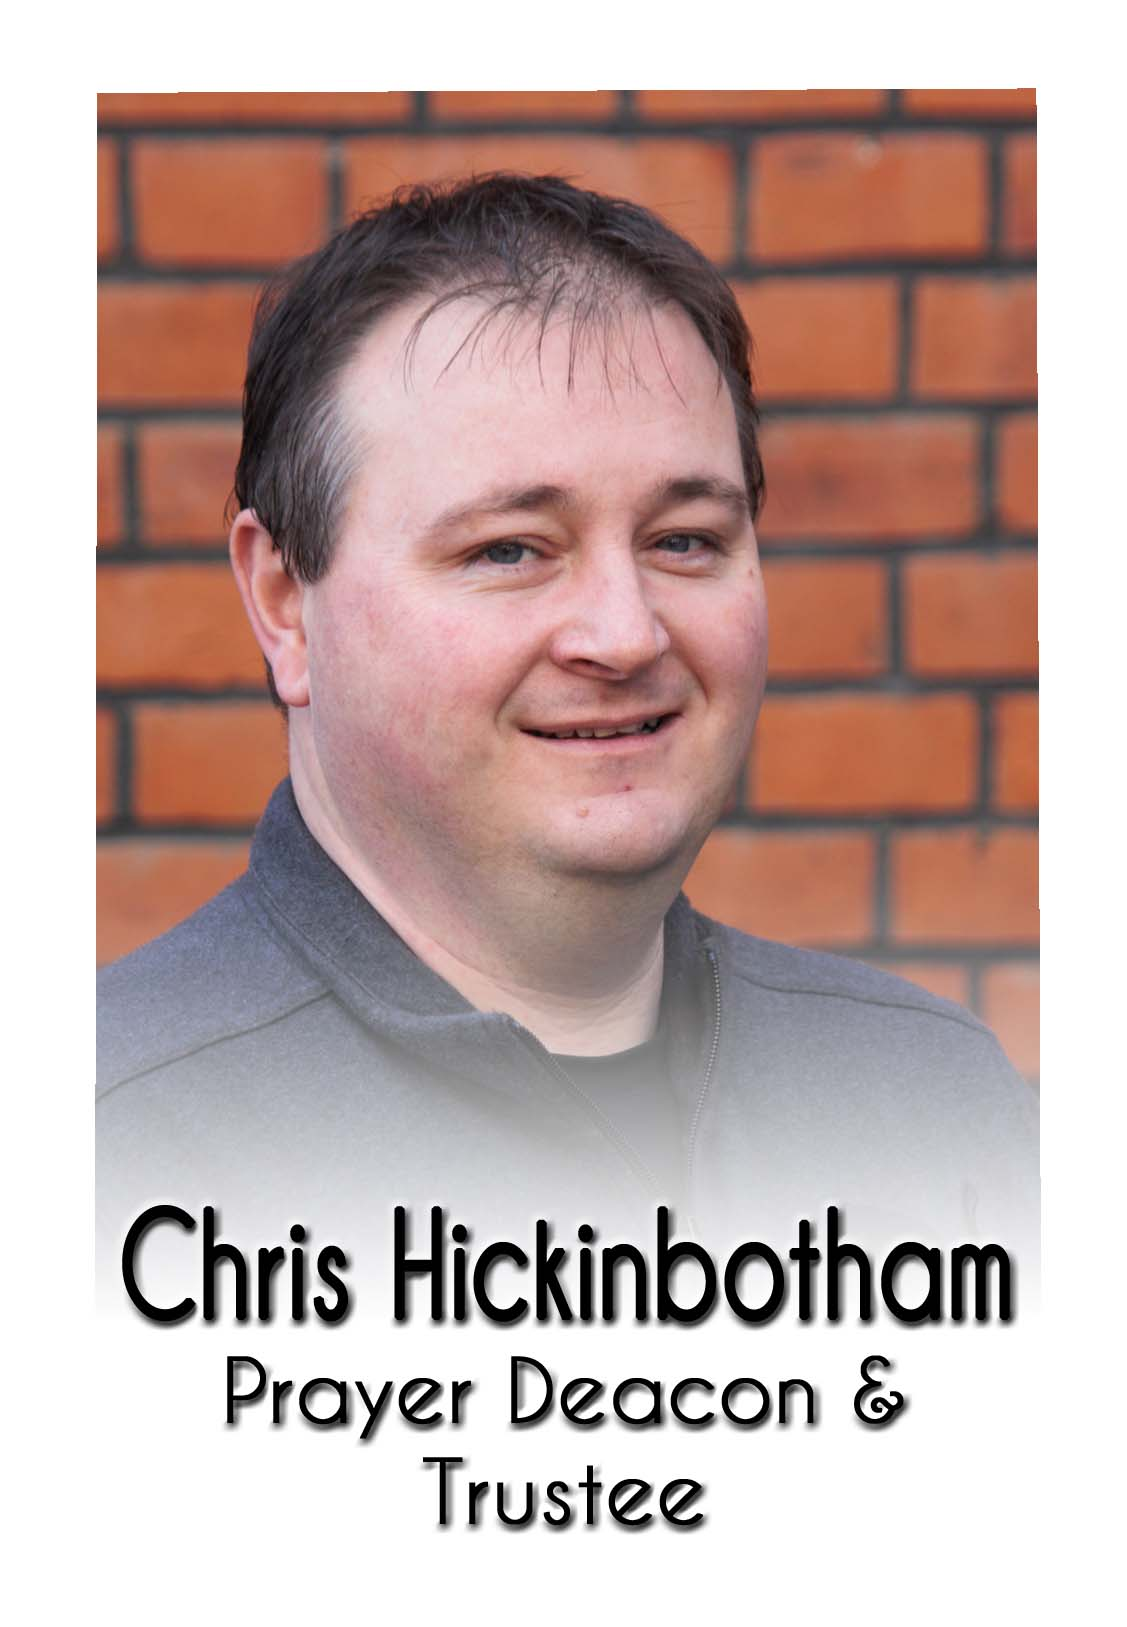 Chris Hickinbotham labelled